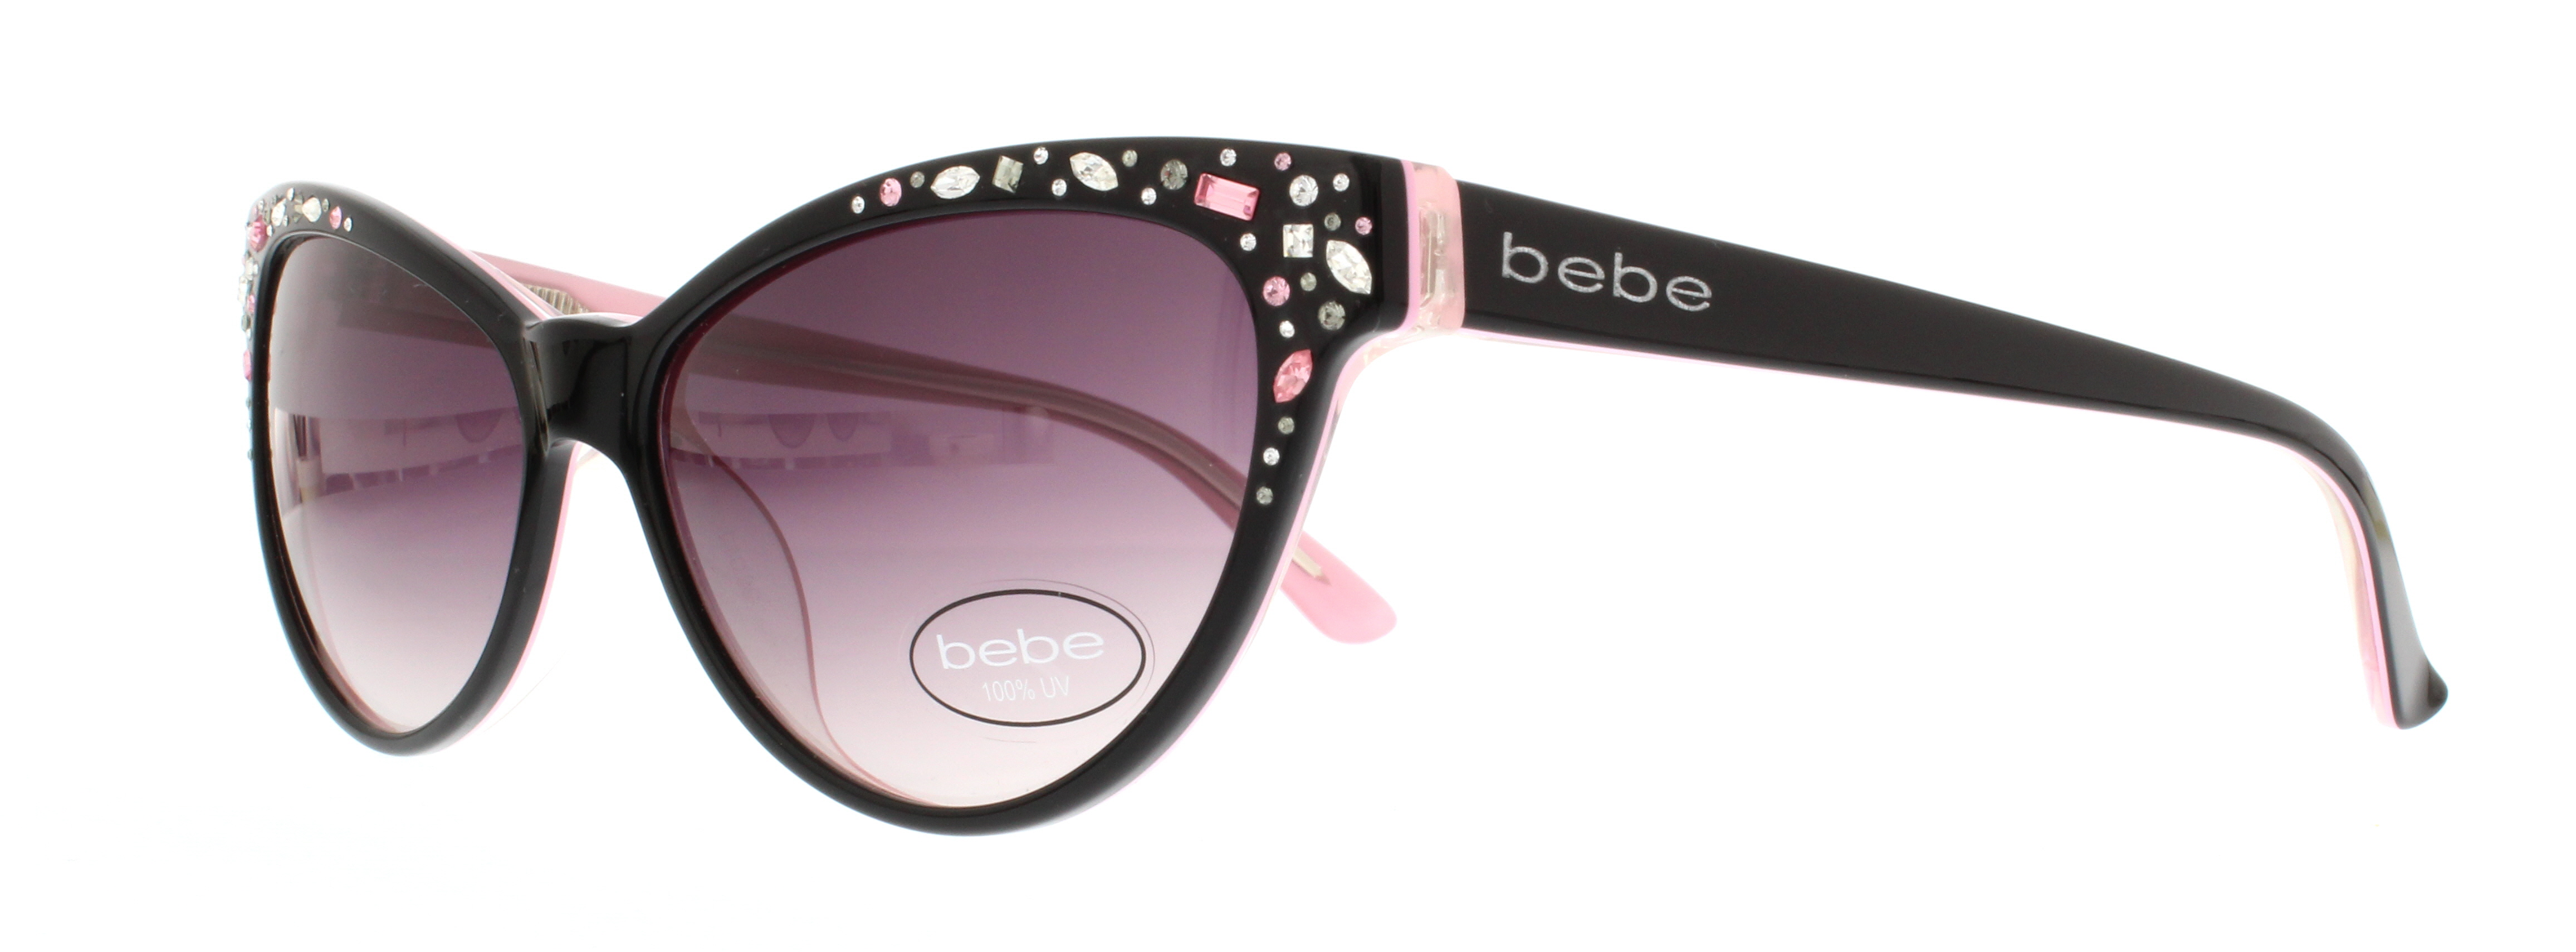 Picture of Bebe BB7024